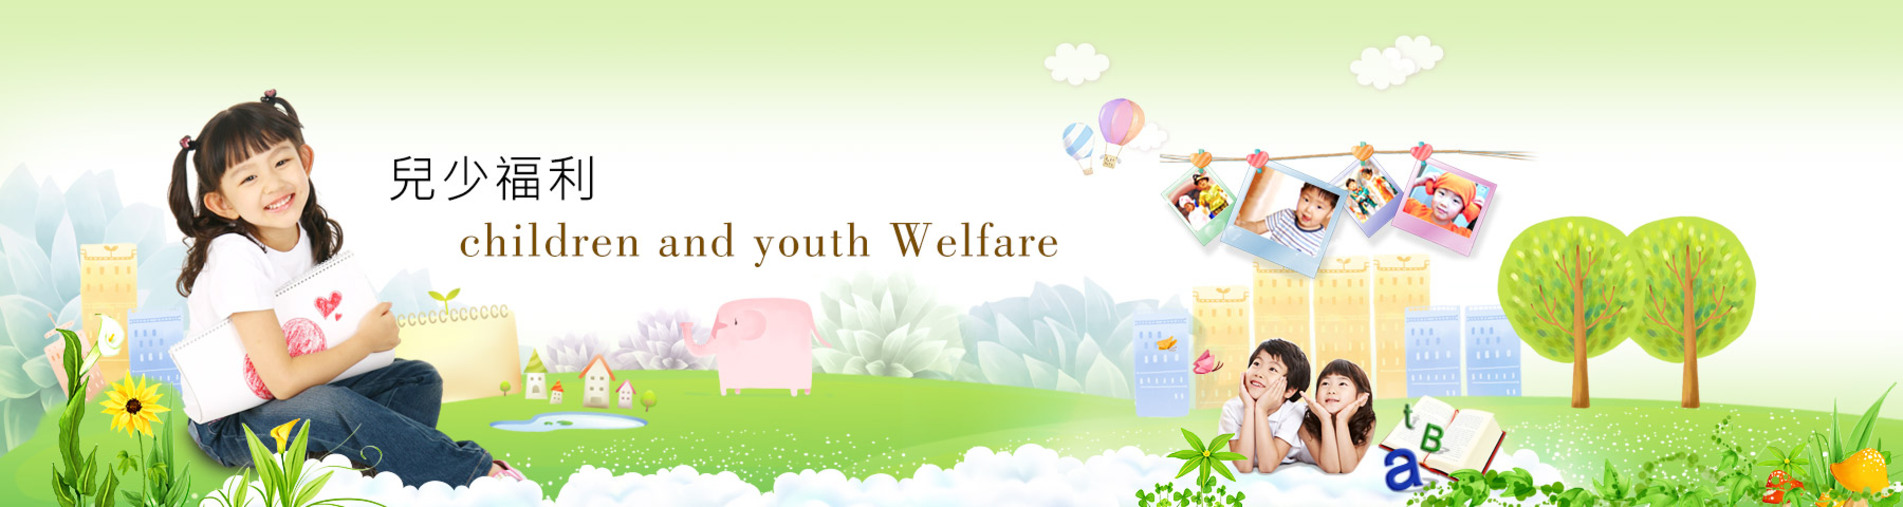 children and youth Welfare